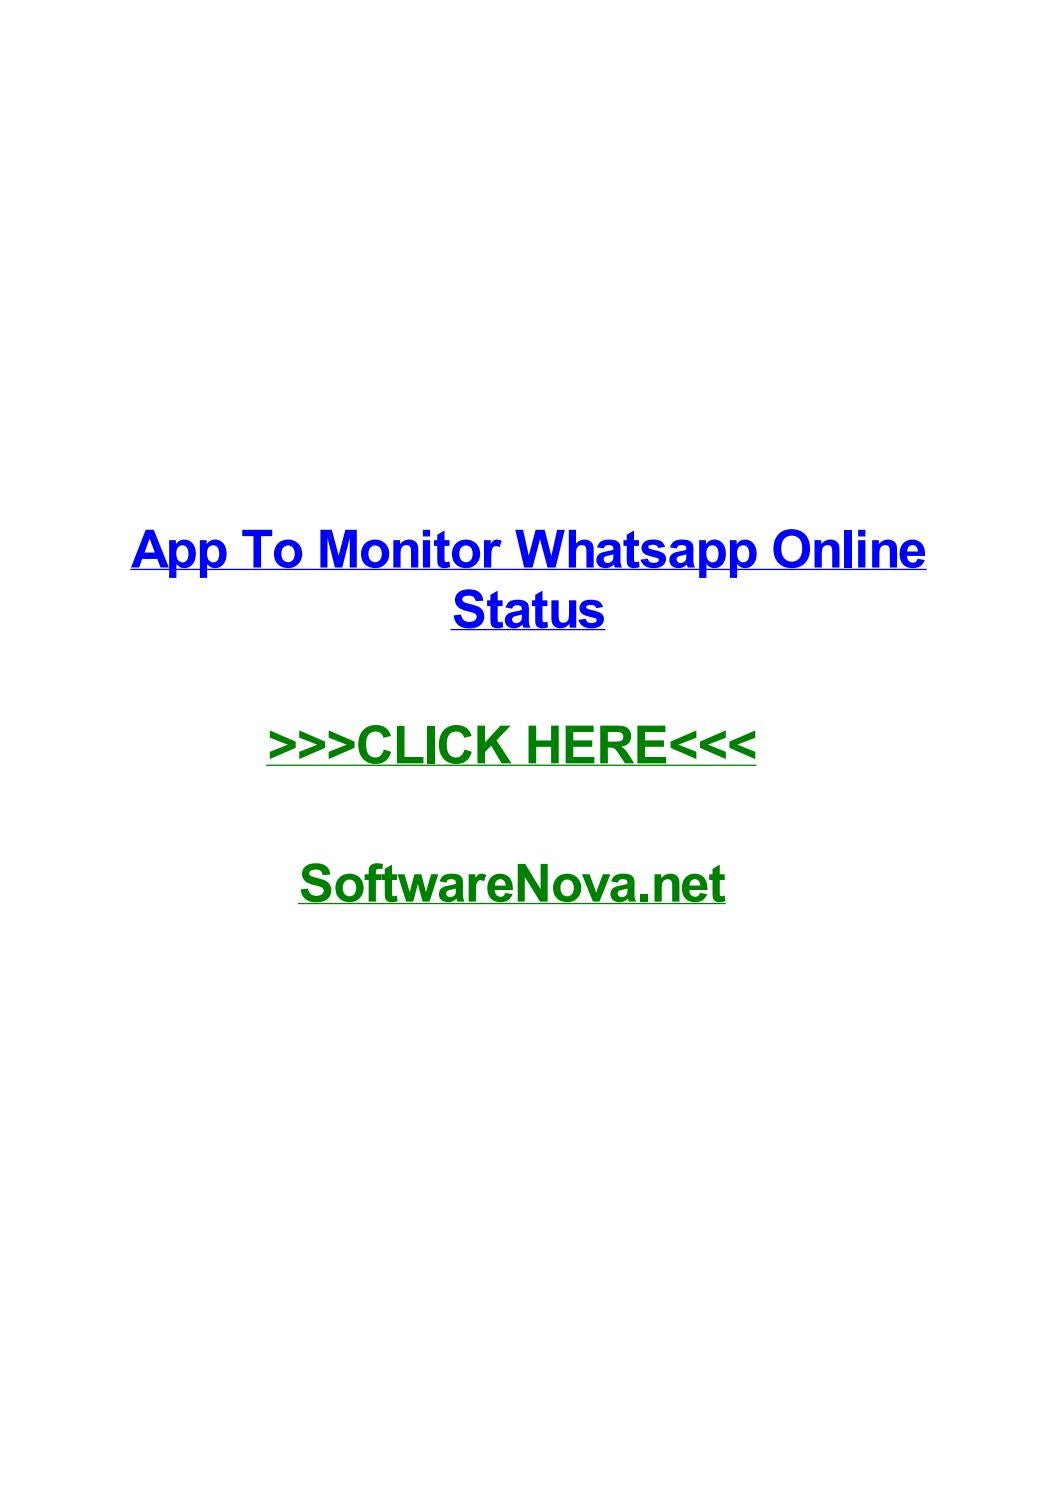 App To Monitor Whatsapp Online Status By Mikediooq Issuu